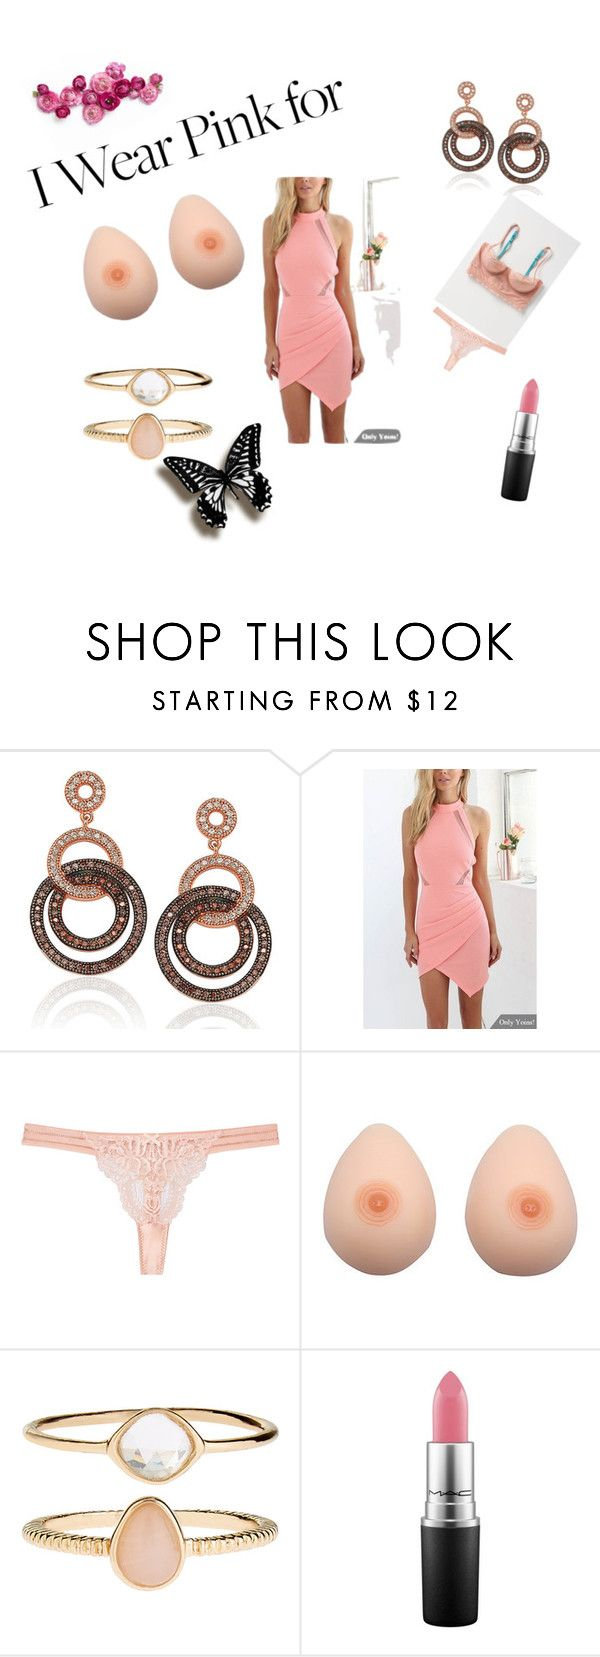 """""""Breast Cancer Awareness Month, Check the Ta tas!"""" by pkgabriel on Polyvore featuring Suzy Levian, STELLA McCARTNEY, Accessorize, MAC Cosmetics and IWearPinkFor"""